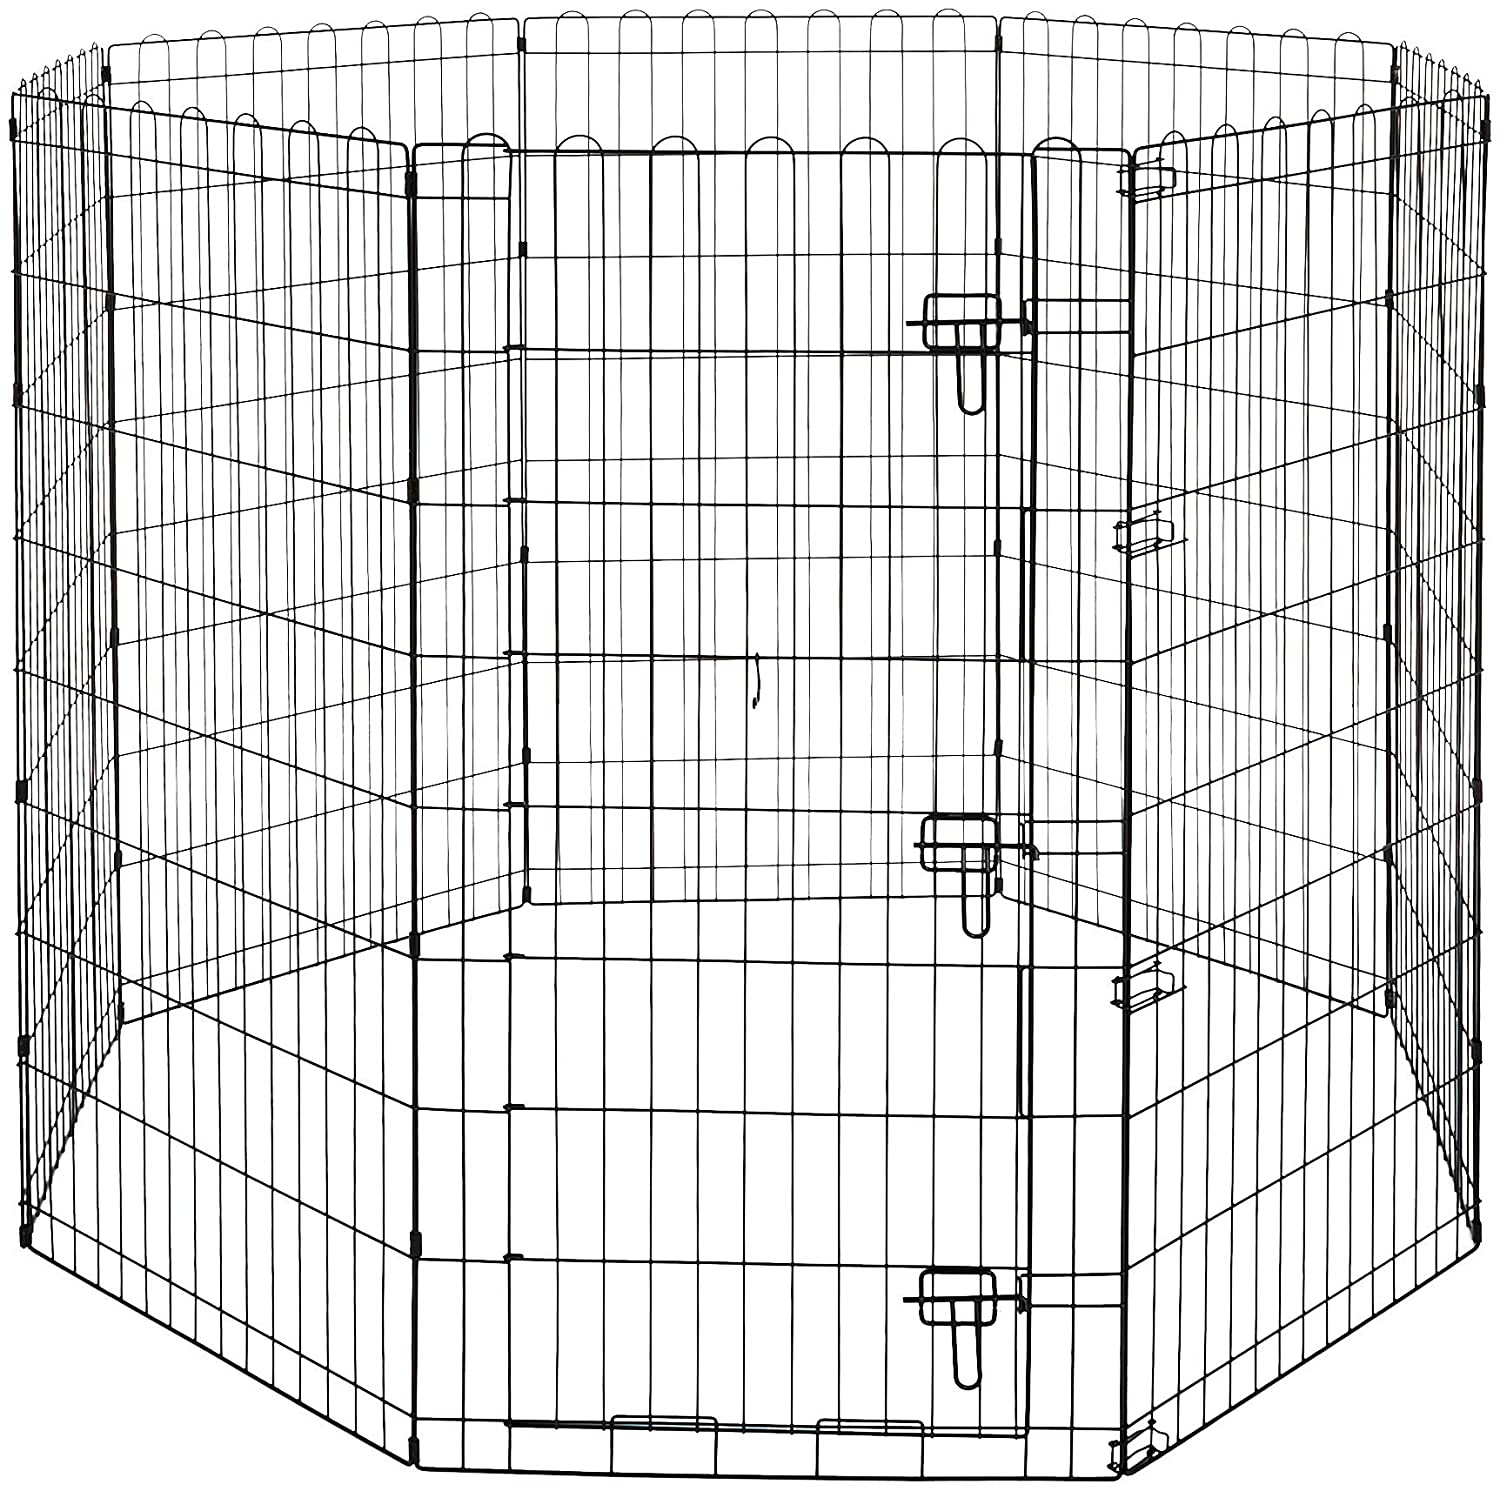 AmazonBasics Foldable Metal Pet Exercise and Playpen with Door, 48